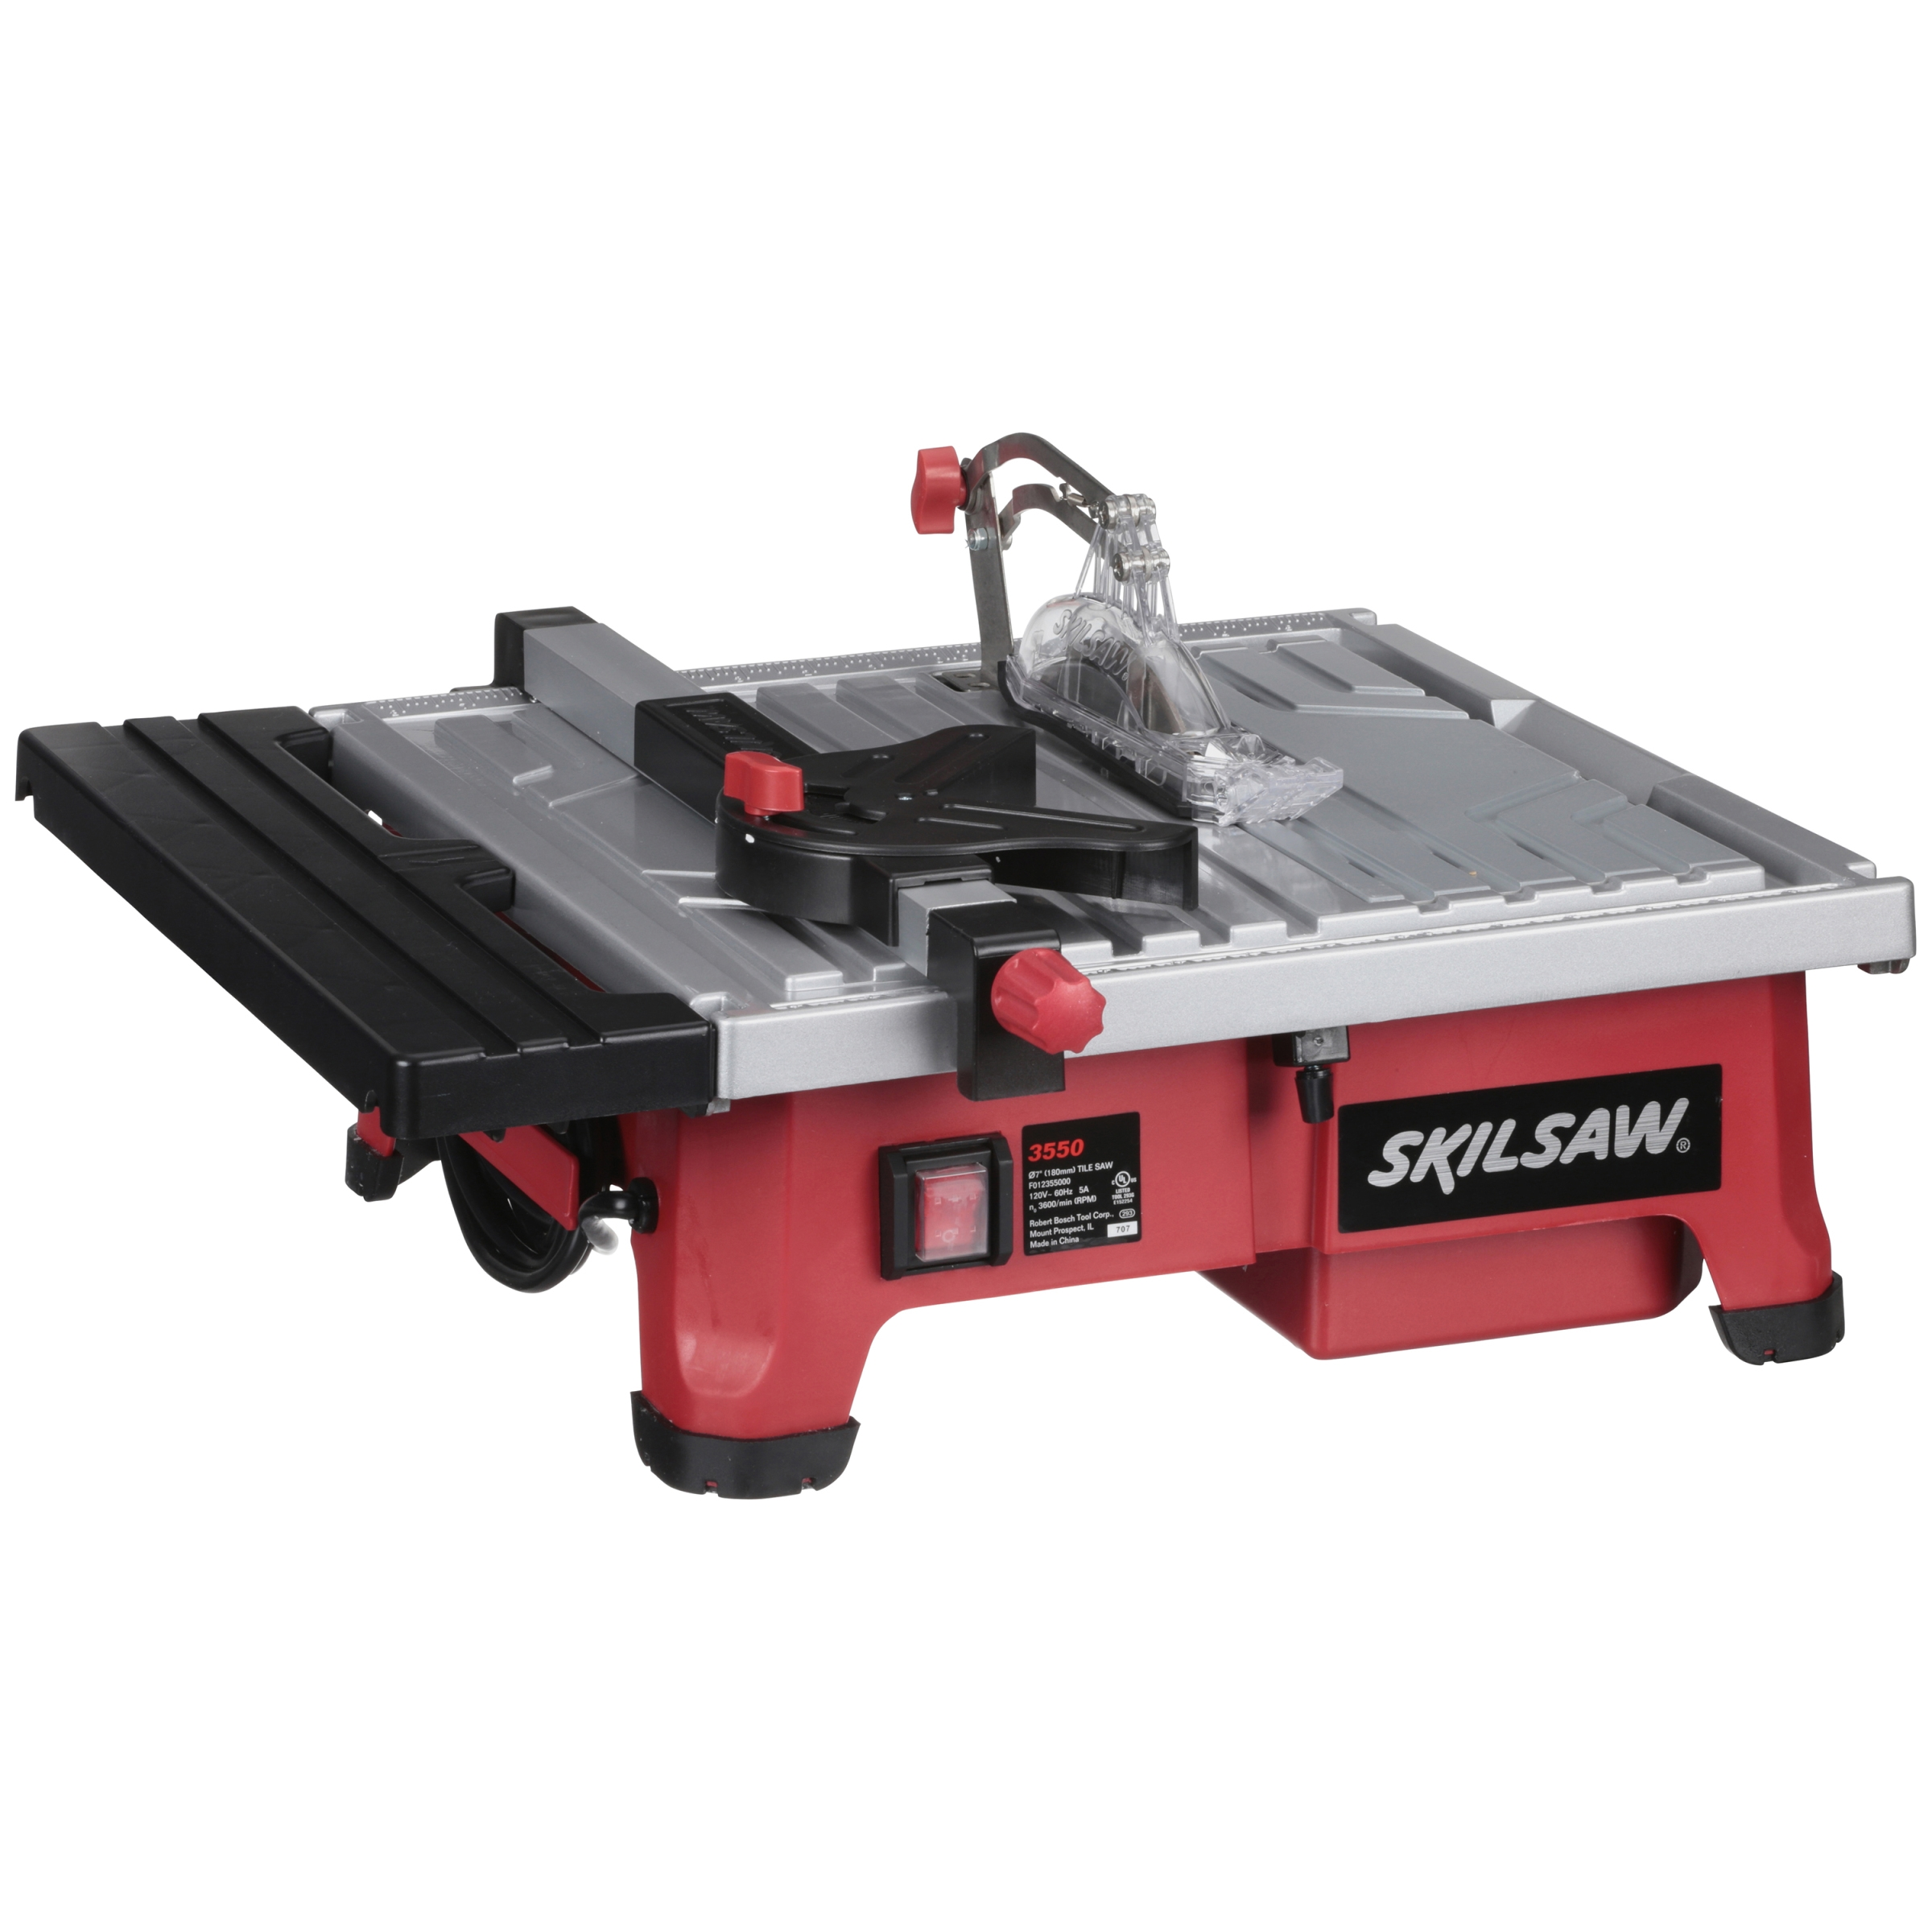 SKILSAW 3550-02 5.0A 7-Inch Wet Tile Saw 5 Pc Box